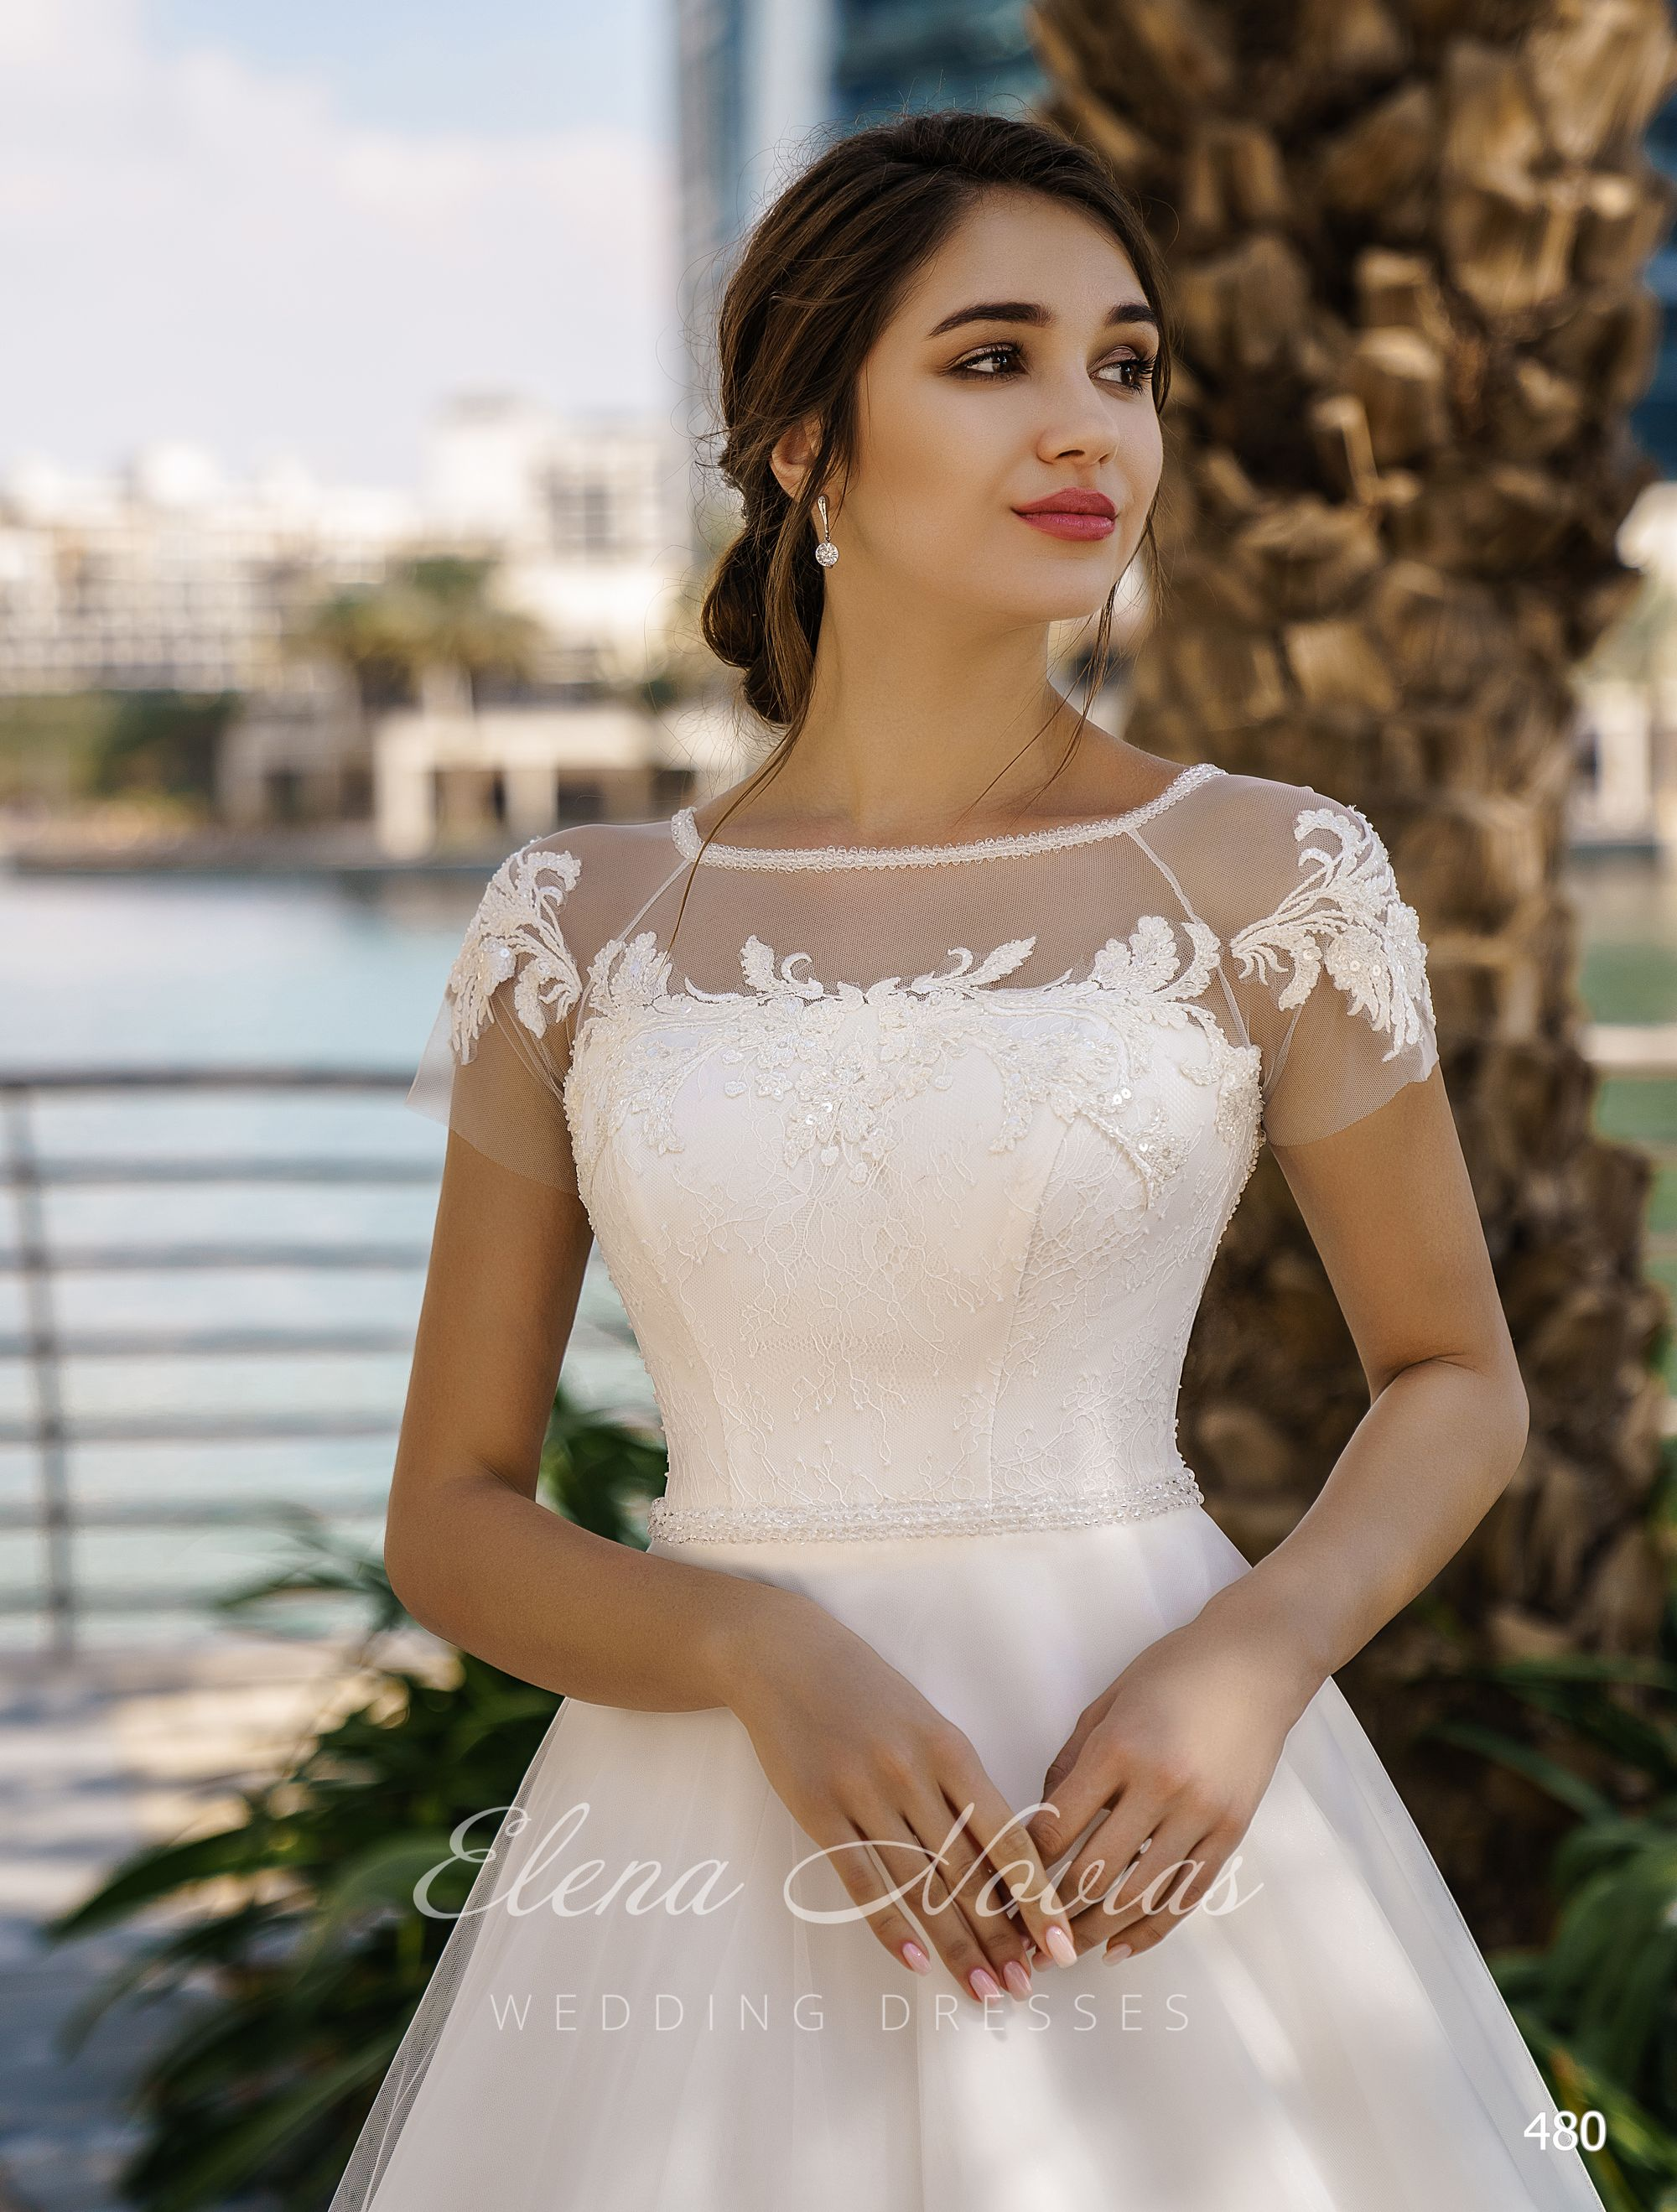 Wedding dresses 480 1